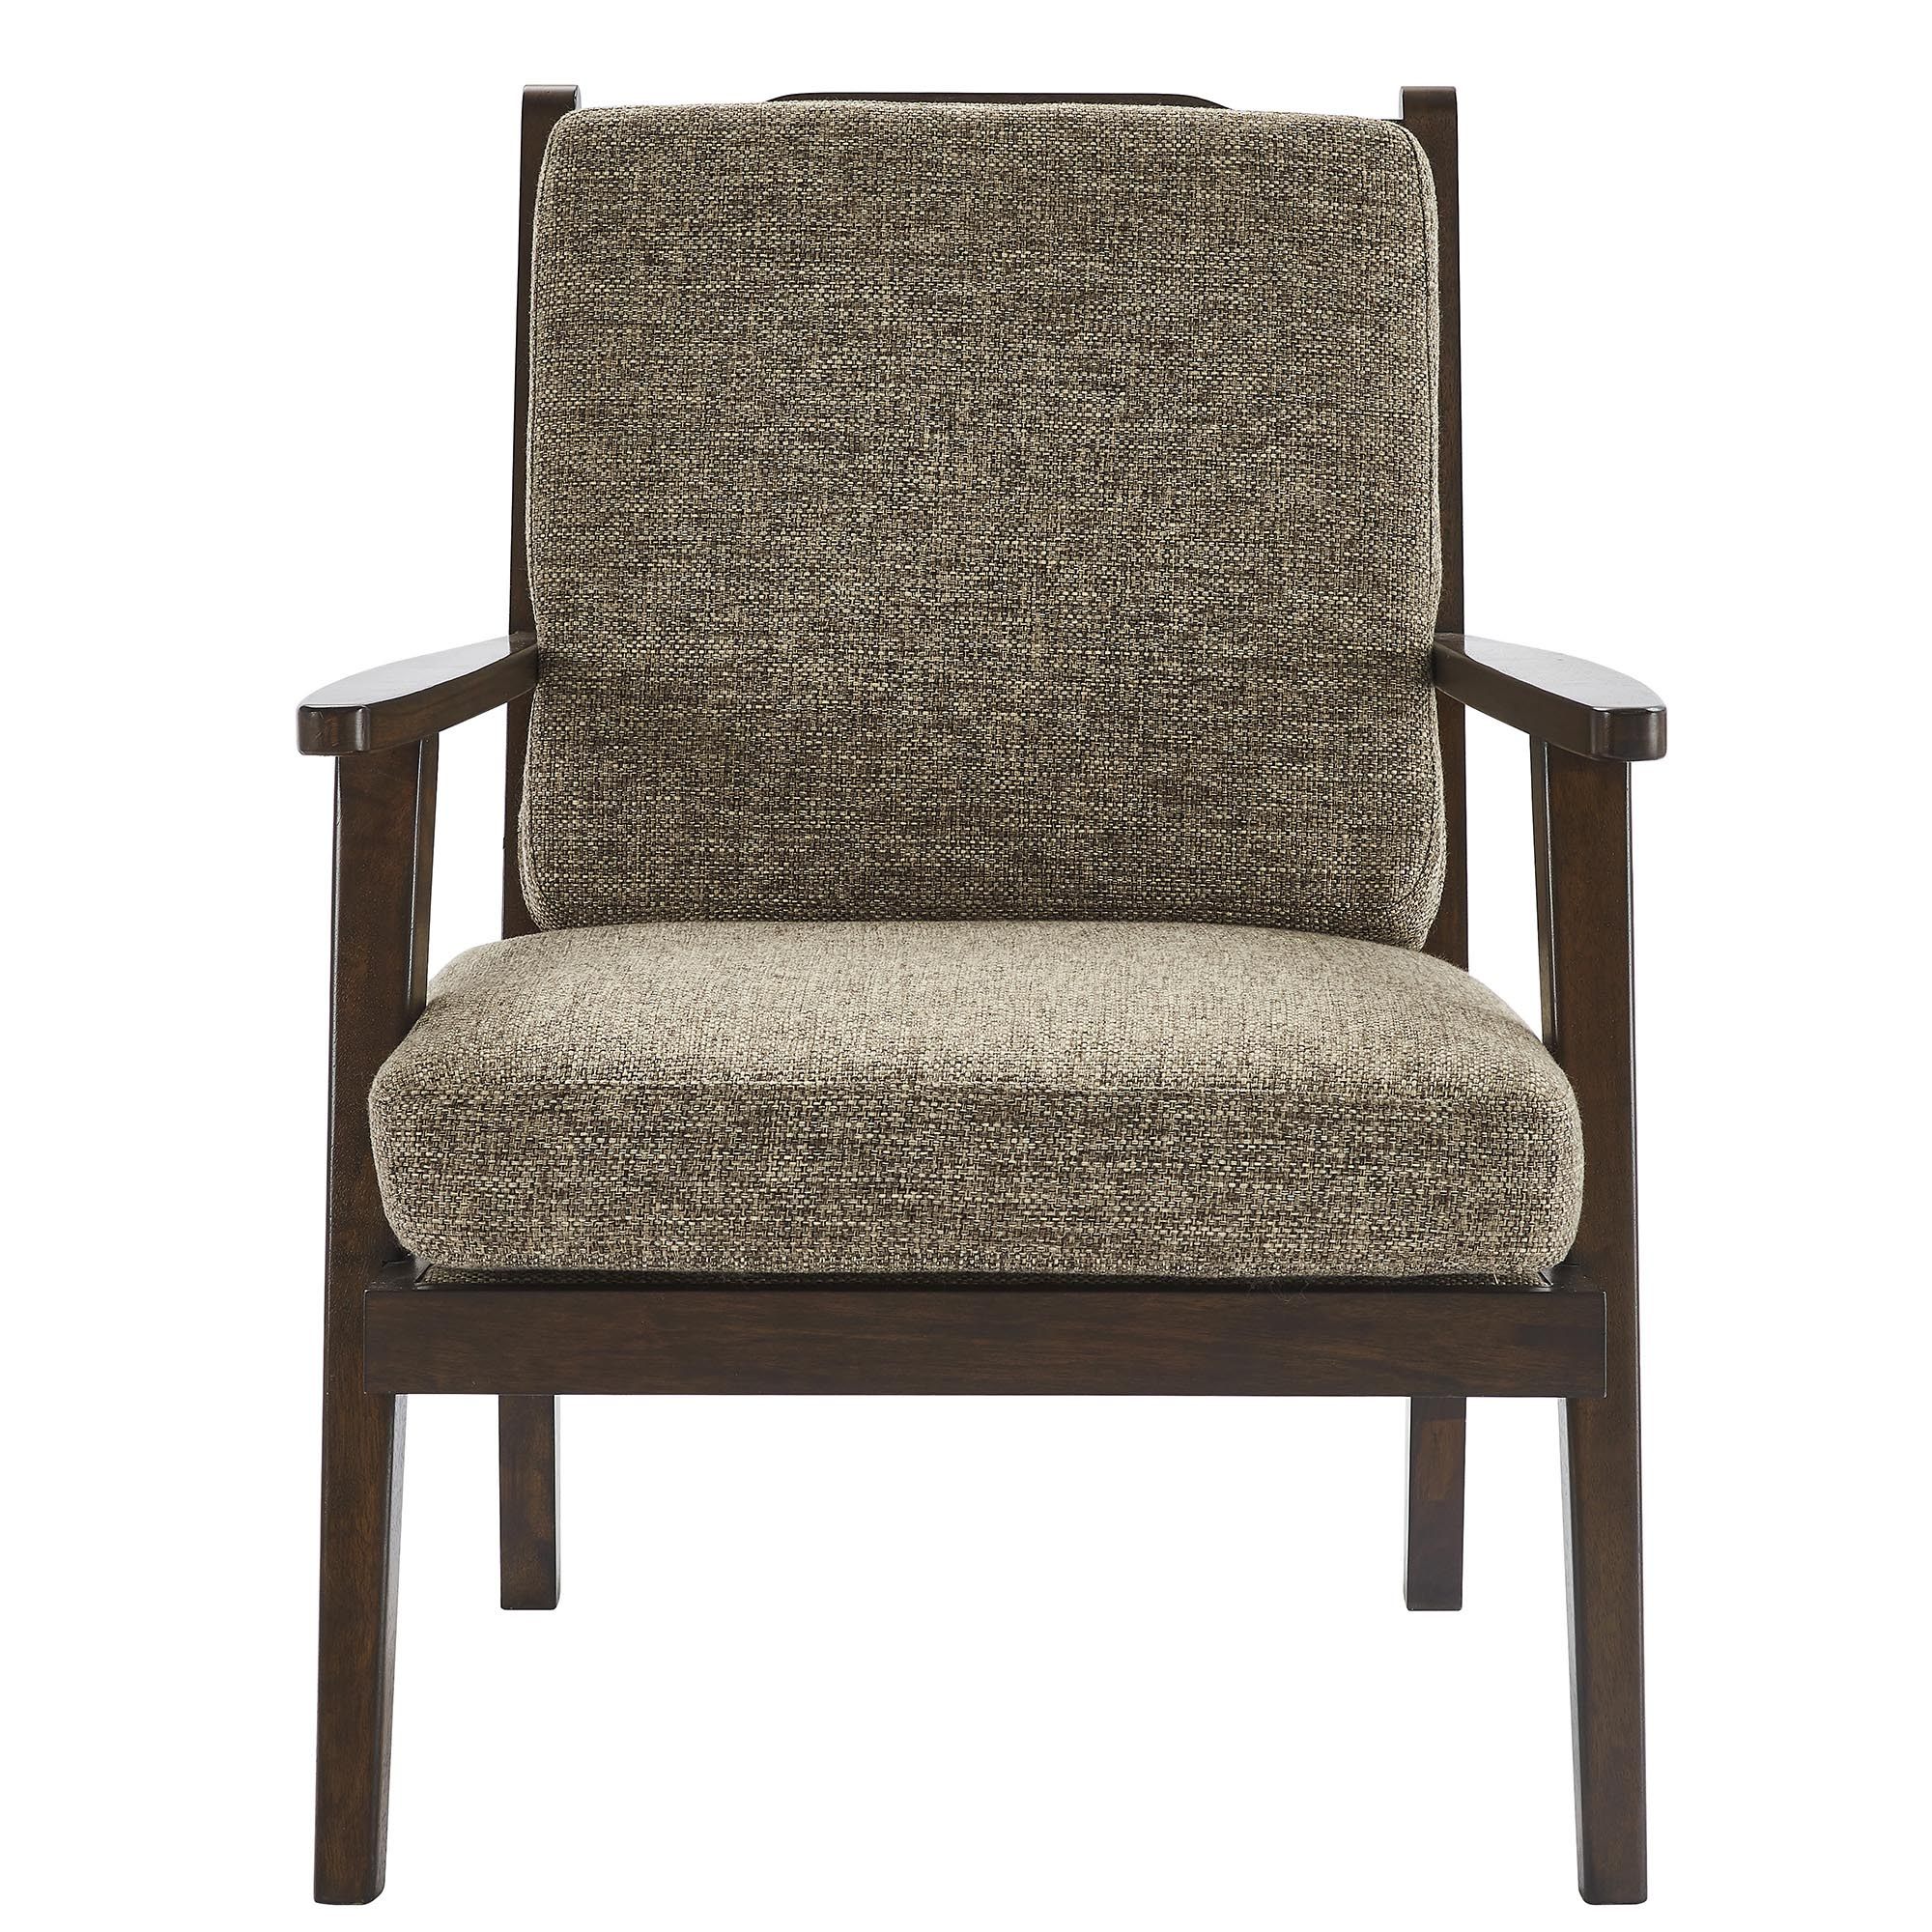 RIGA-ACCENT CHAIR-BROWN, 841173032258, Accent Chairs by Midha Furniture to Brampton, Mississauga, Etobicoke, Toronto, Scraborough, Caledon, Oakville, Markham, Ajax, Pickering, Oshawa, Richmondhill, Kitchener, Hamilton and GTA area